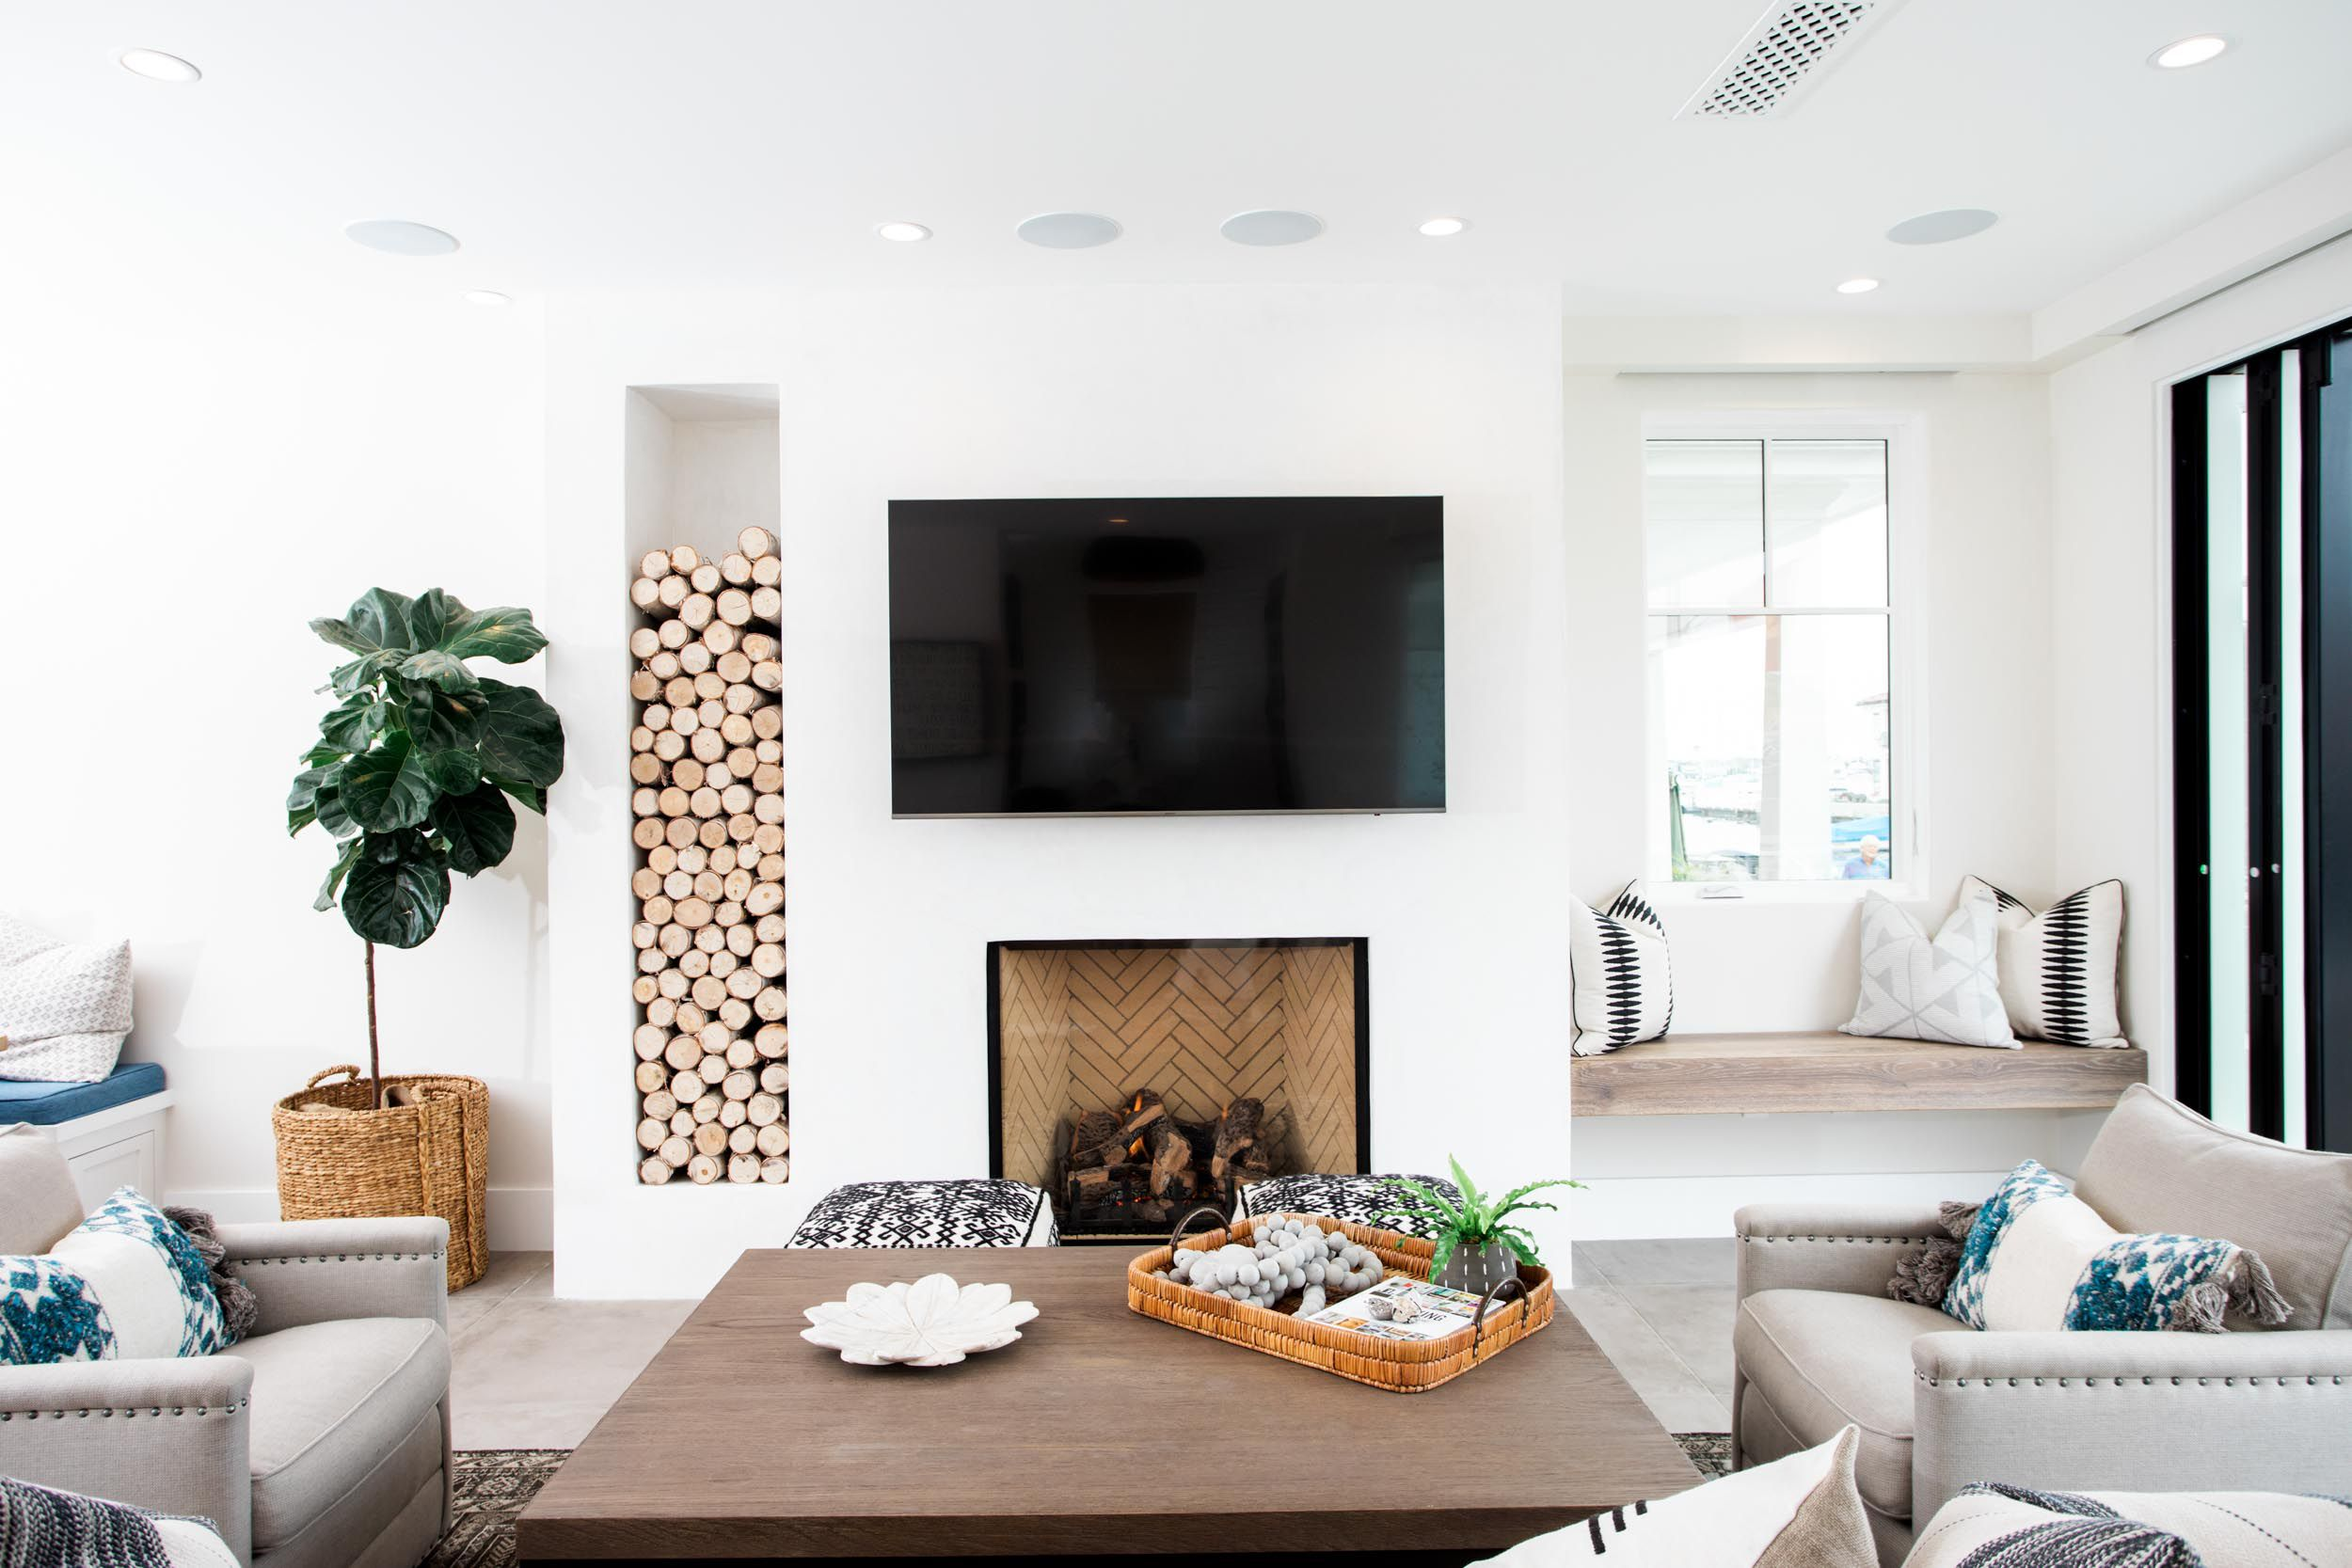 Ultramodern Wall Niches That Serve You An Extra Bonus For Square Footage